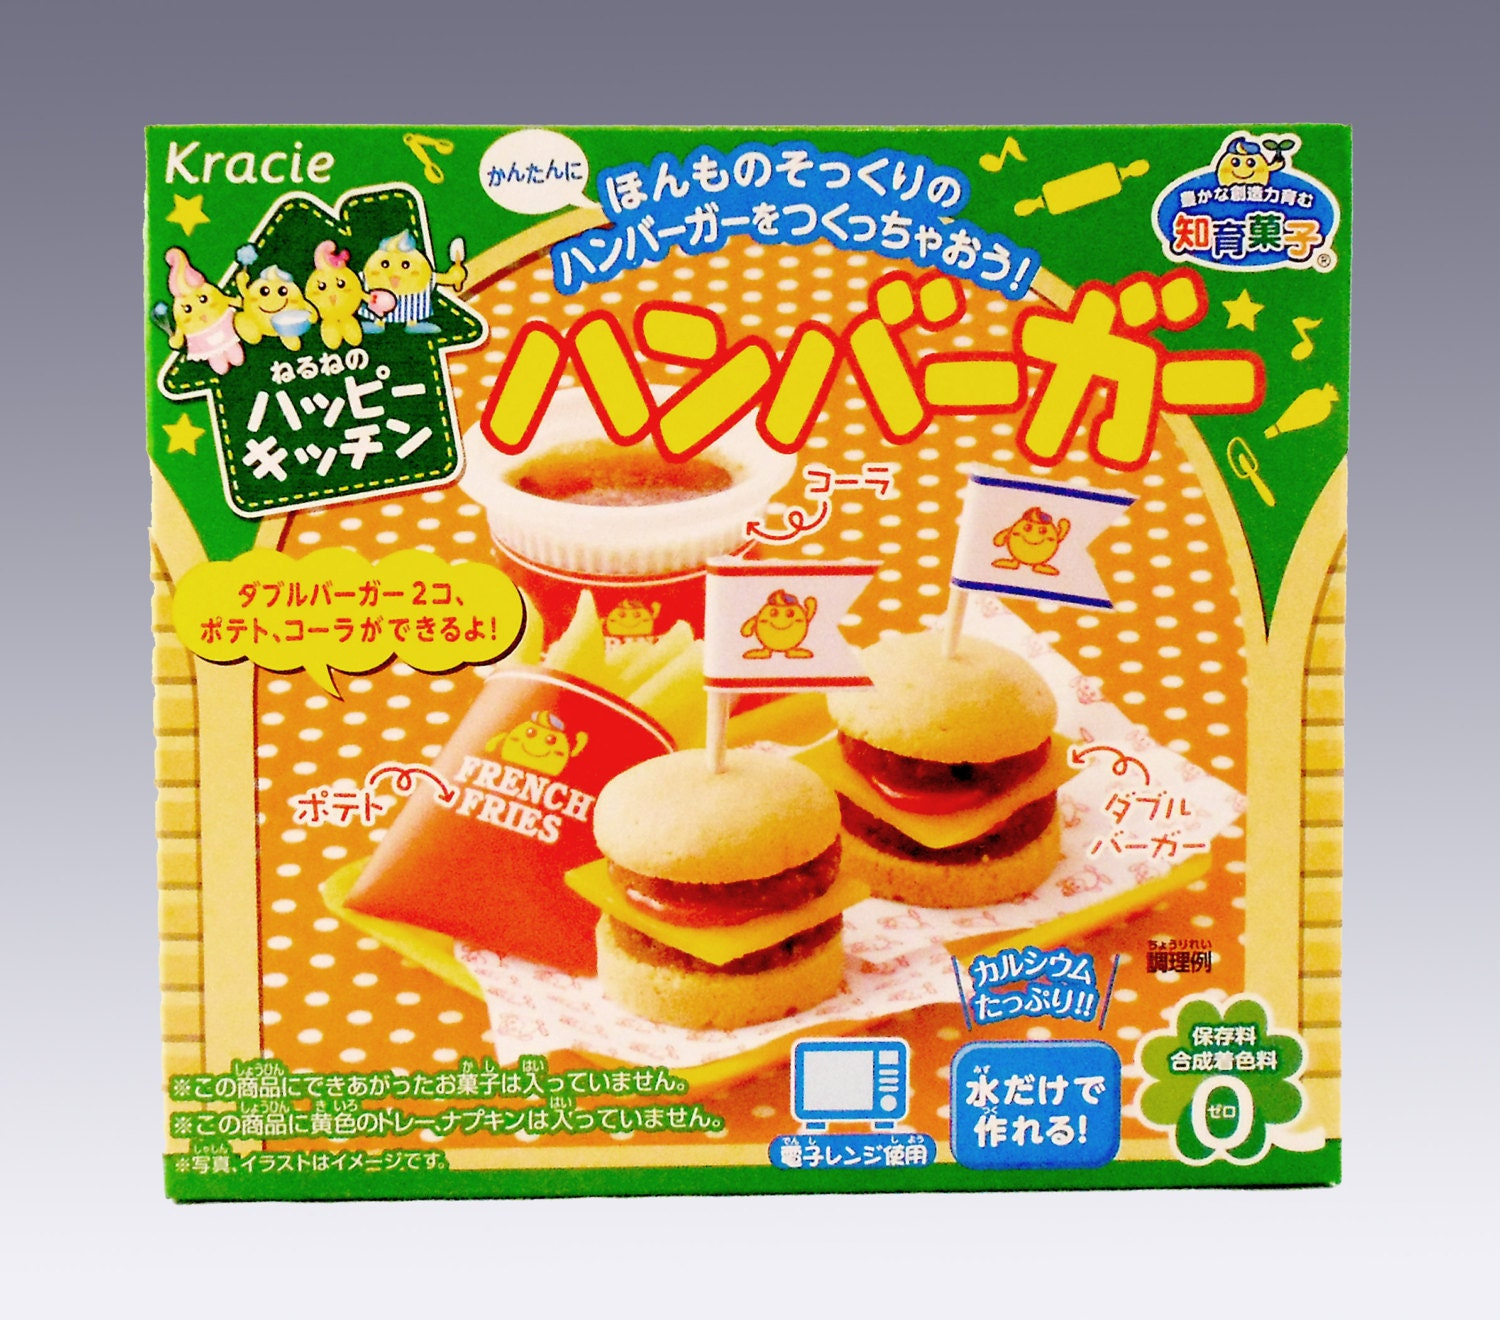 Kracie HAMBURGER Popin' Cookin' Gummy DIY Candy Making